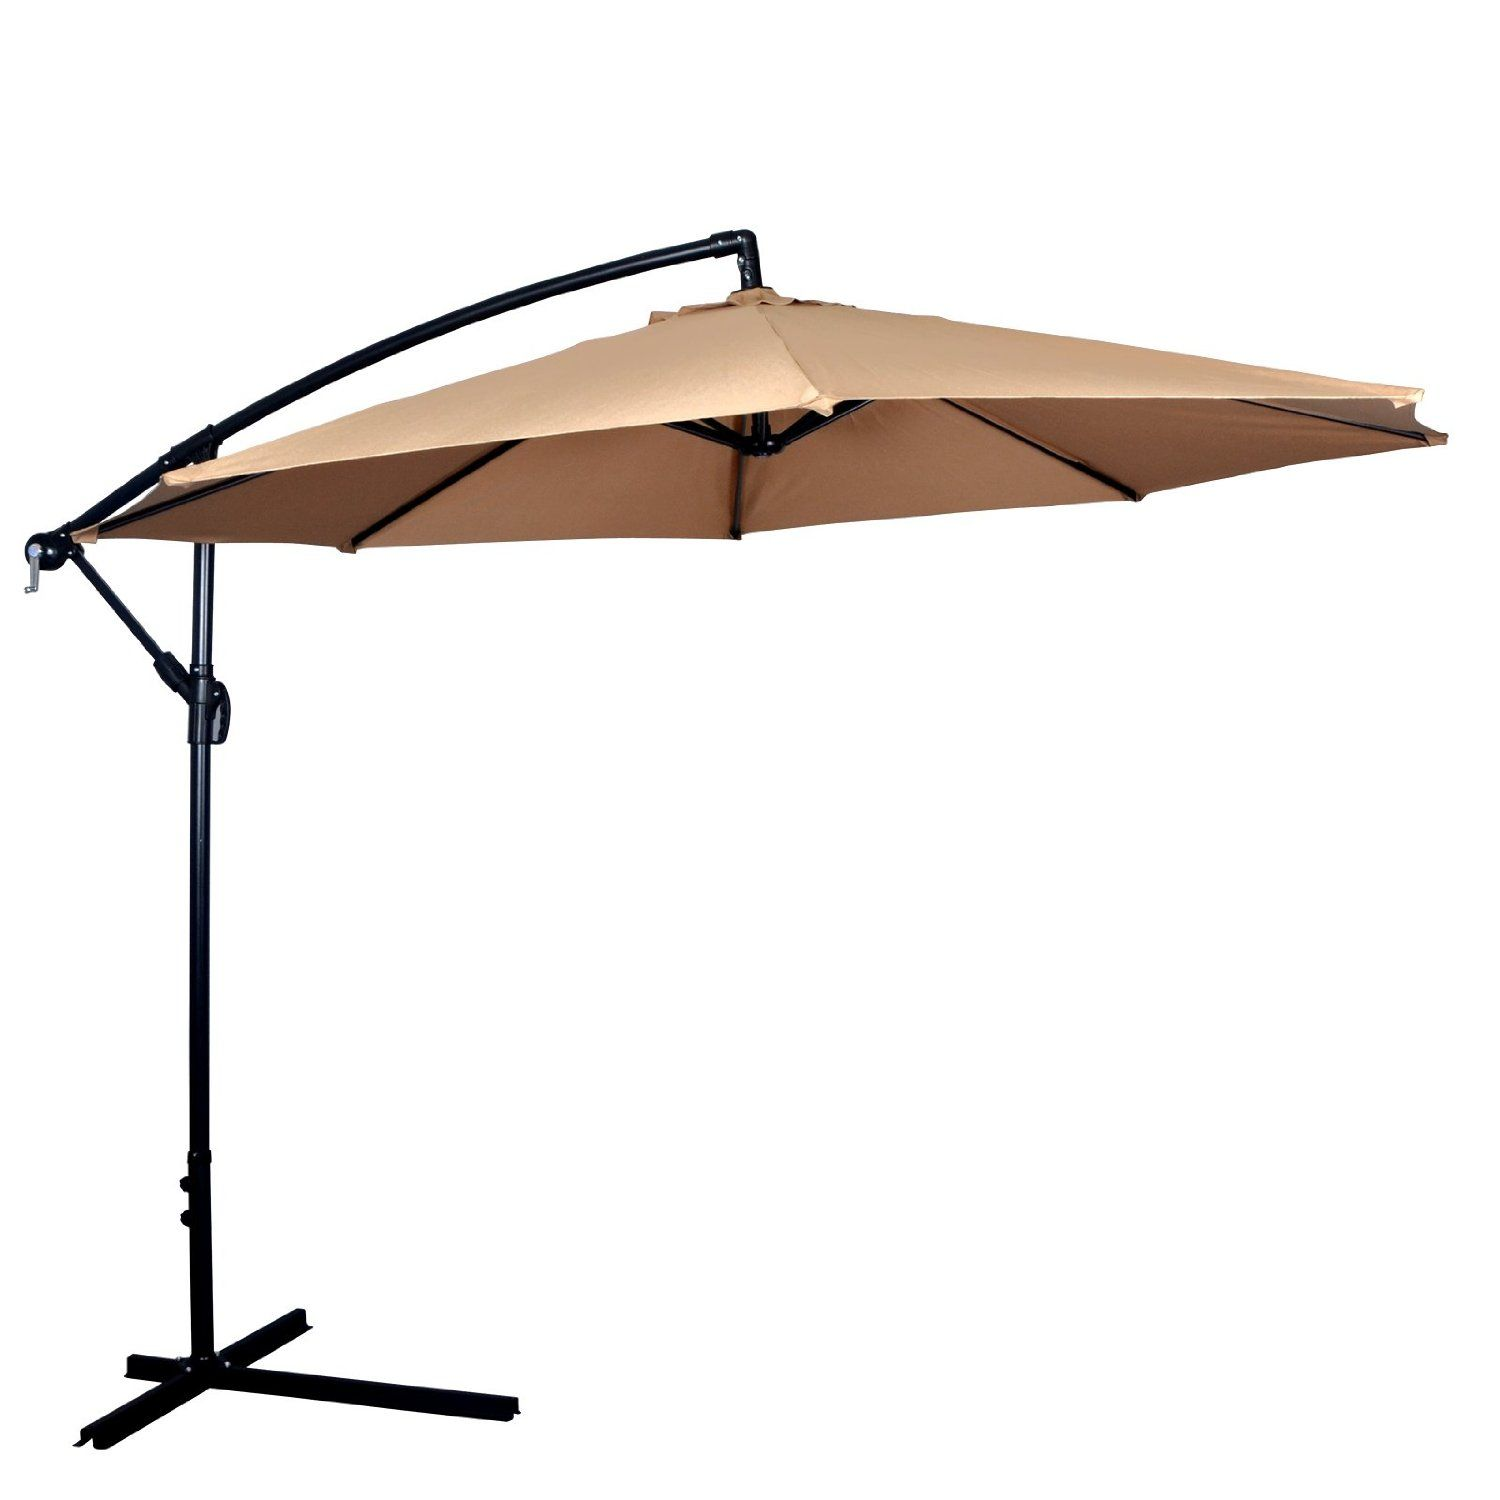 Amazon Com New Tan Patio Umbrella Offset 10 Hanging Umbrella Outdoor Market Umbrella D10 Patio Lawn Garden Offset Patio Umbrella Best Patio Umbrella Patio Umbrellas